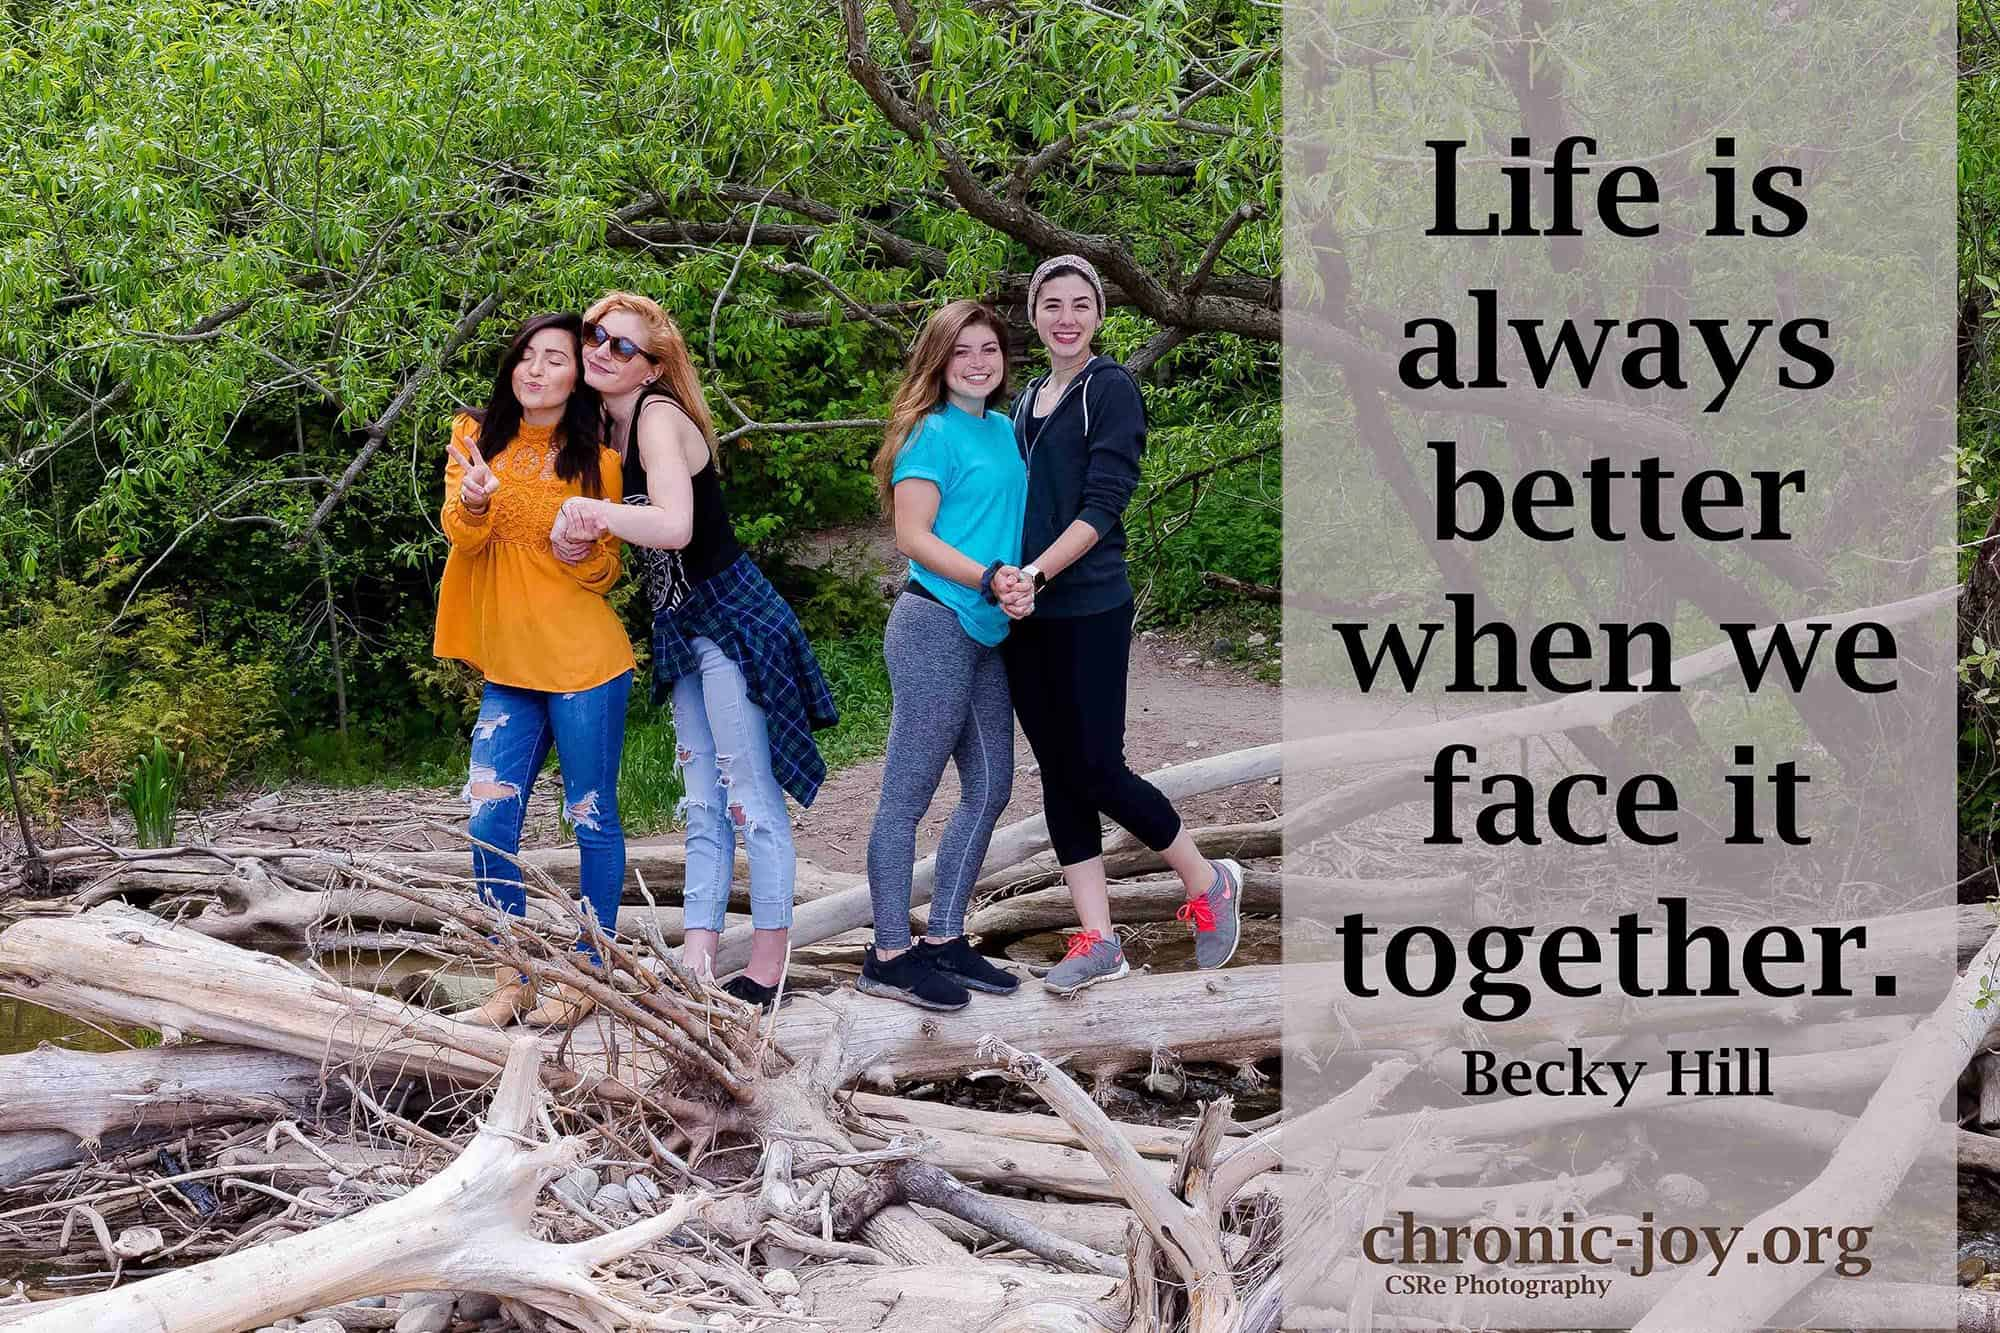 Life is always better when we face it together.